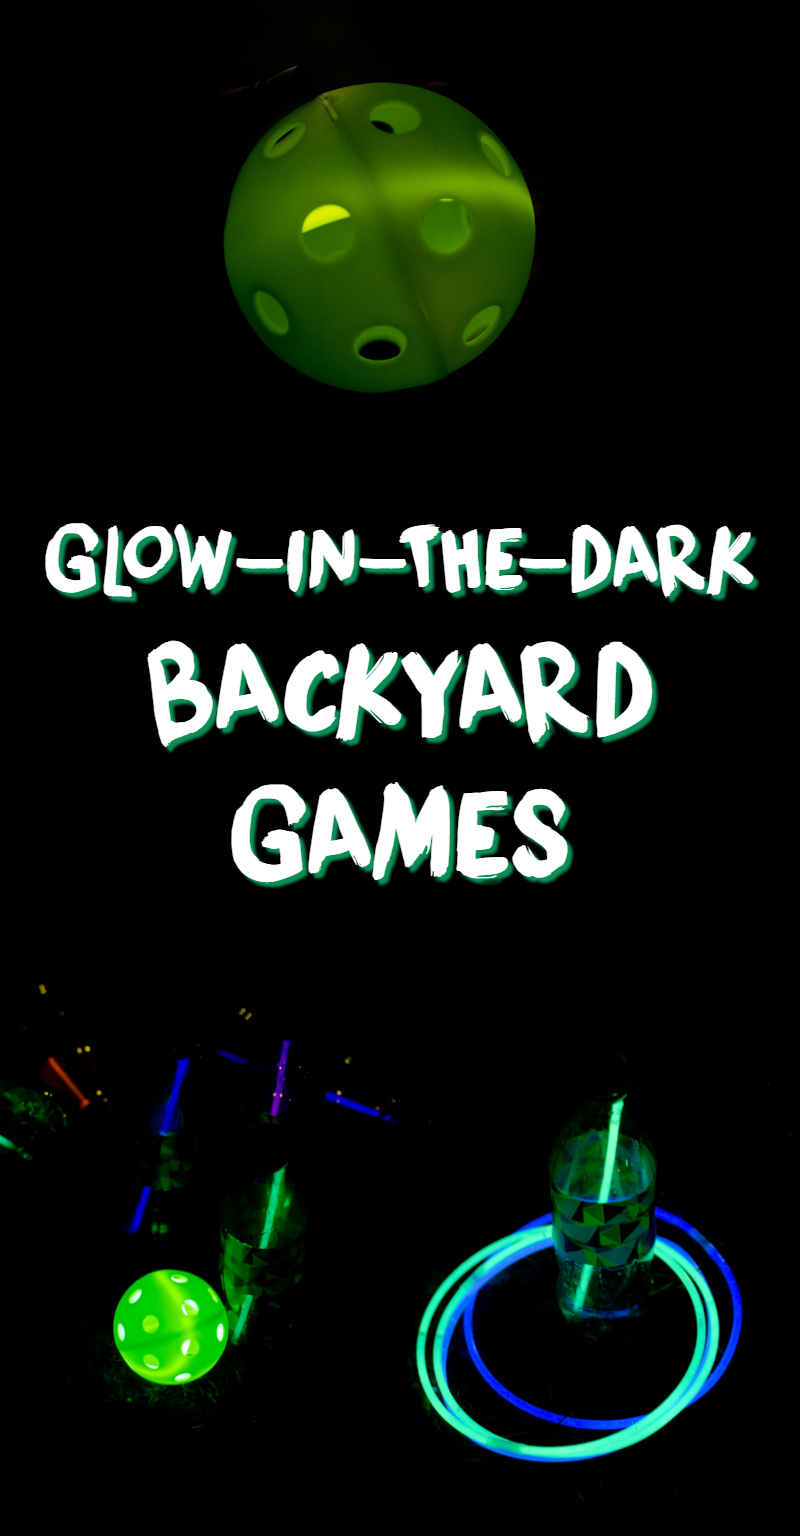 glow-in-the-dark backyard games